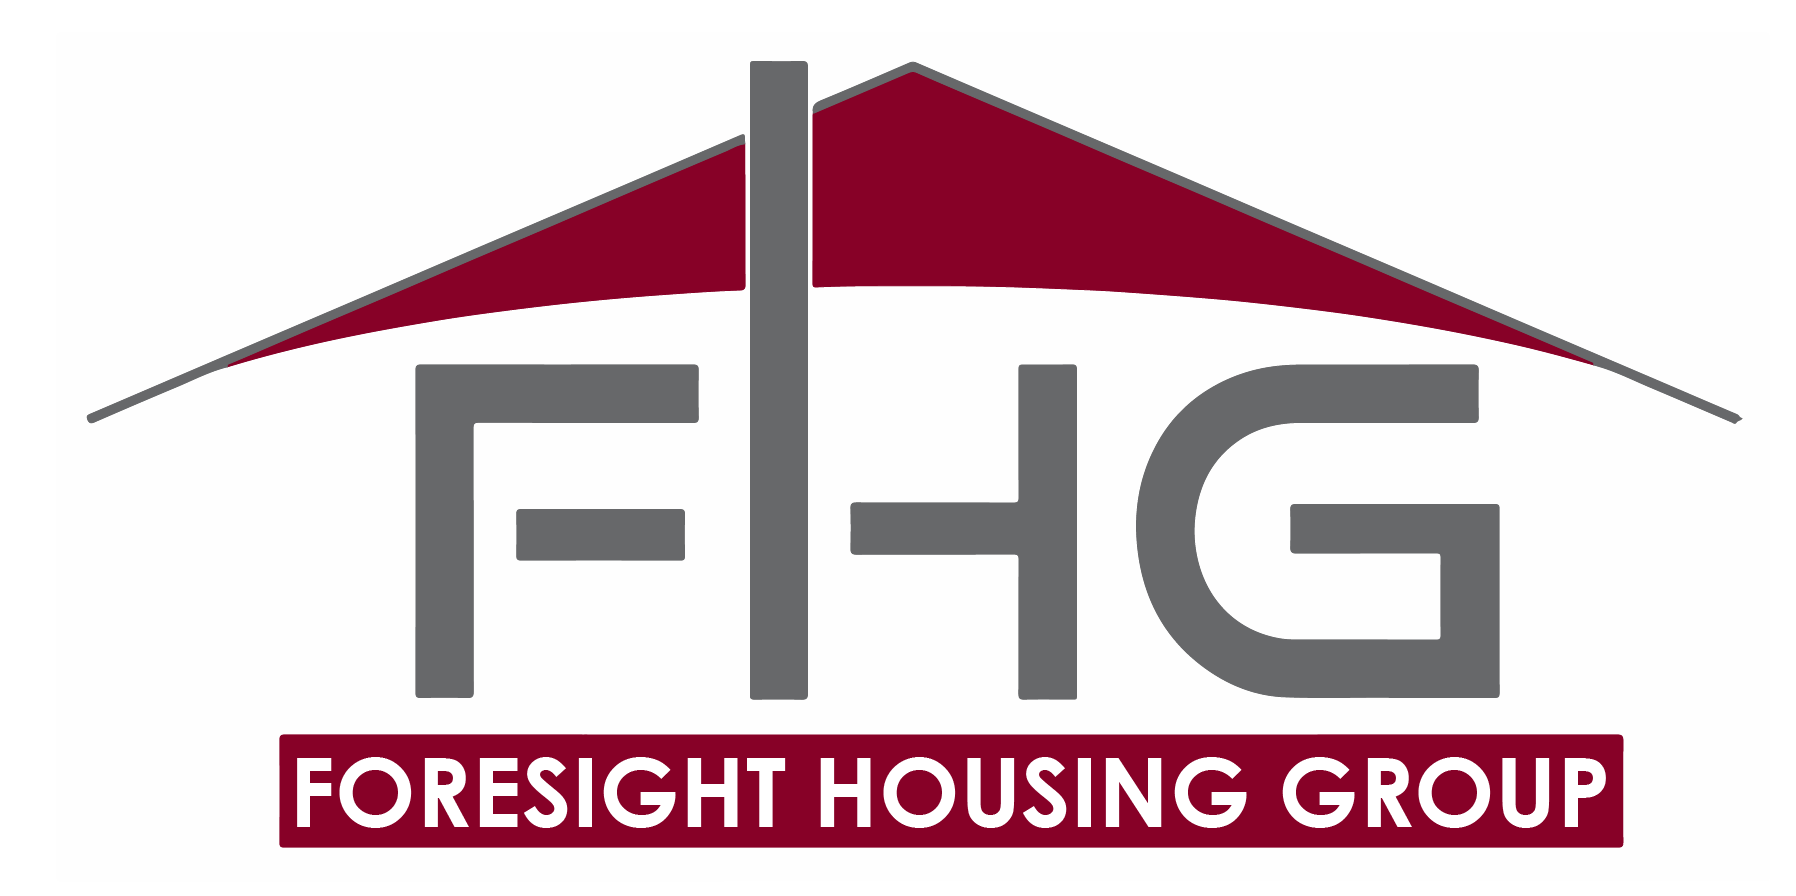 Foresight Housing Group